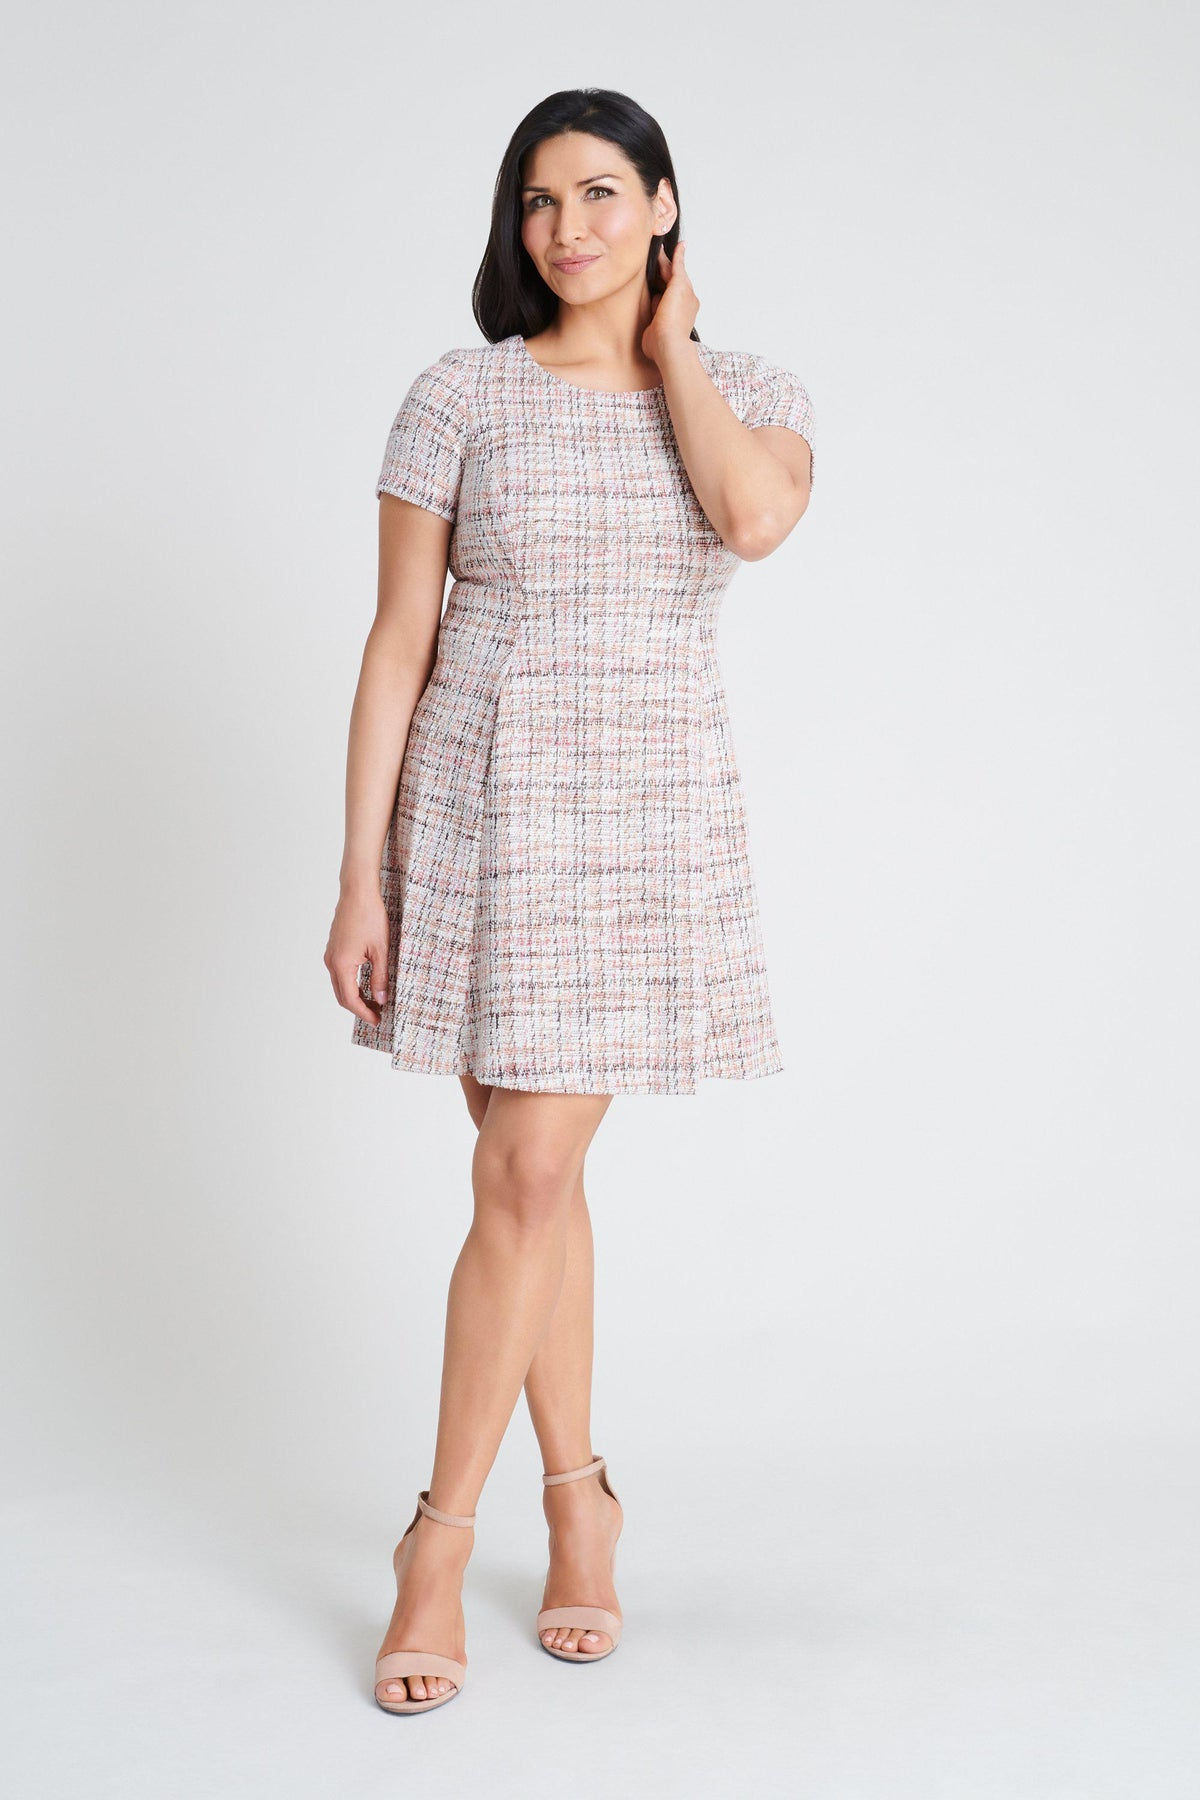 Woman posing wearing Rose Maggie Rose Tweed Dress from Connected Apparel